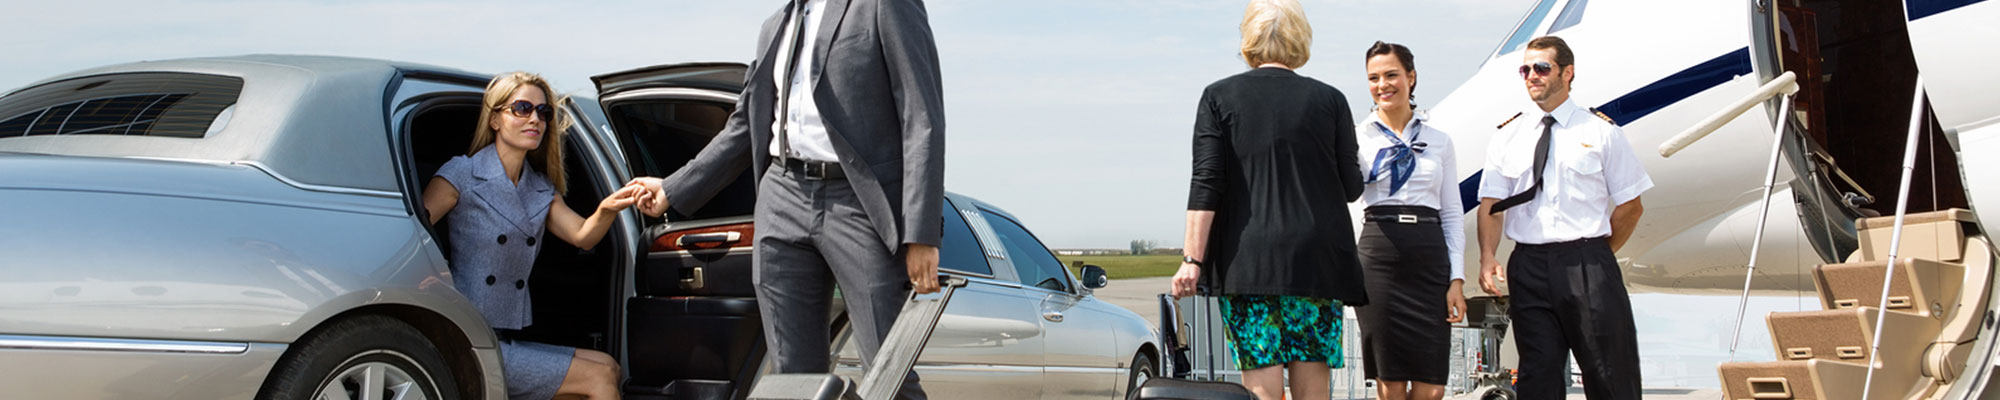 Immense Benefits of Chauffeured Airport Limo Service